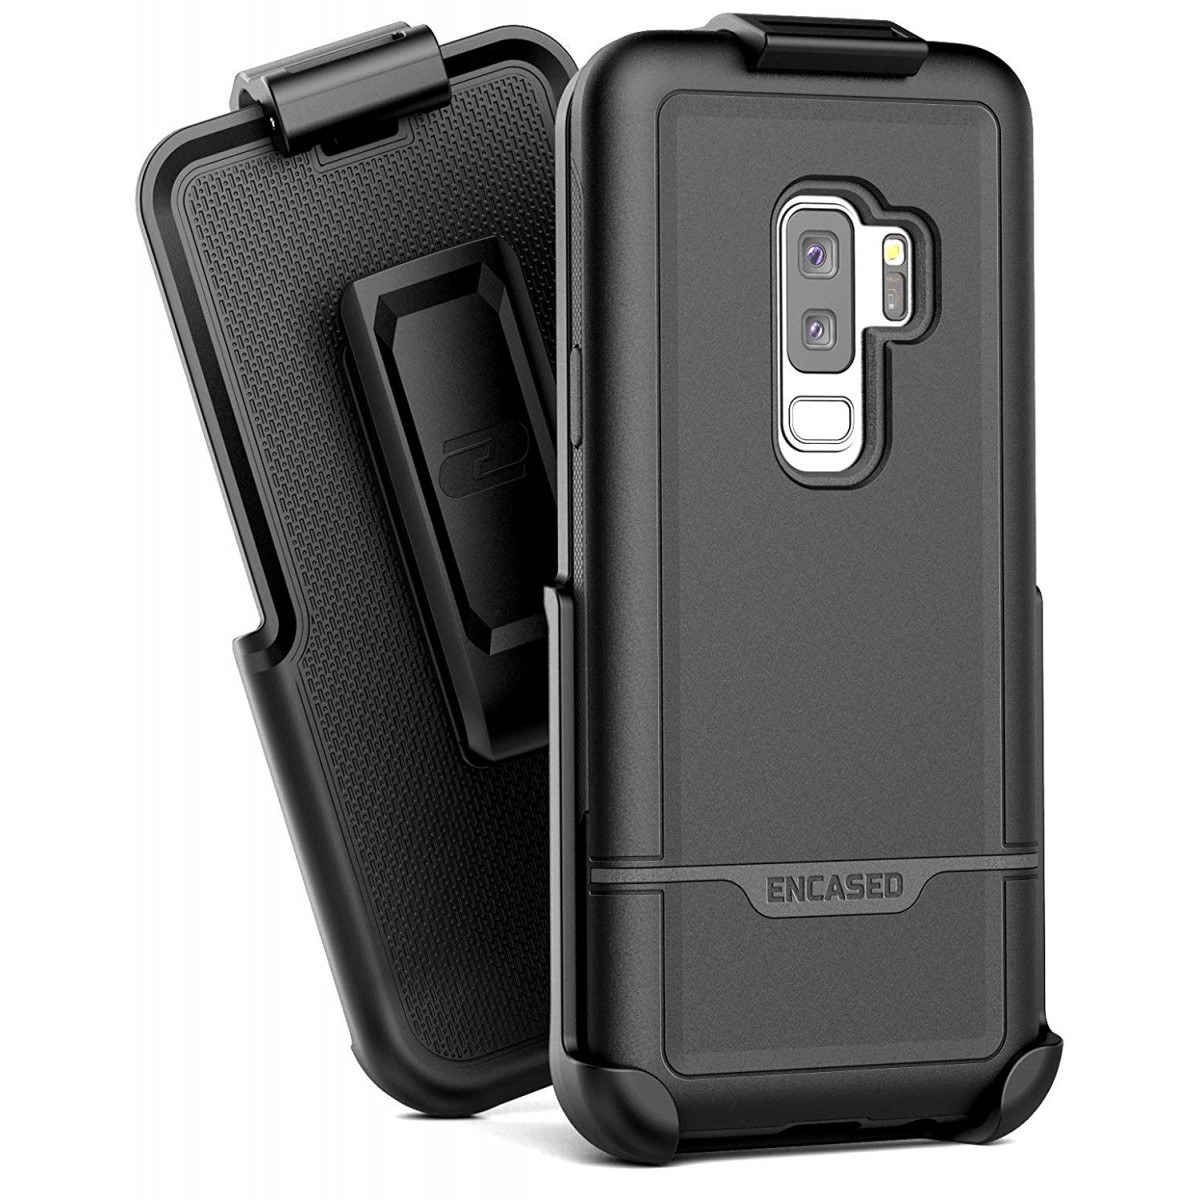 low priced e393e 822b1 Encased Galaxy S9 Plus Heavy Duty Case + Belt Clip, (Rebel Series) Military  Grade Tough Case with Reinforced Holster (S9+) (Black)